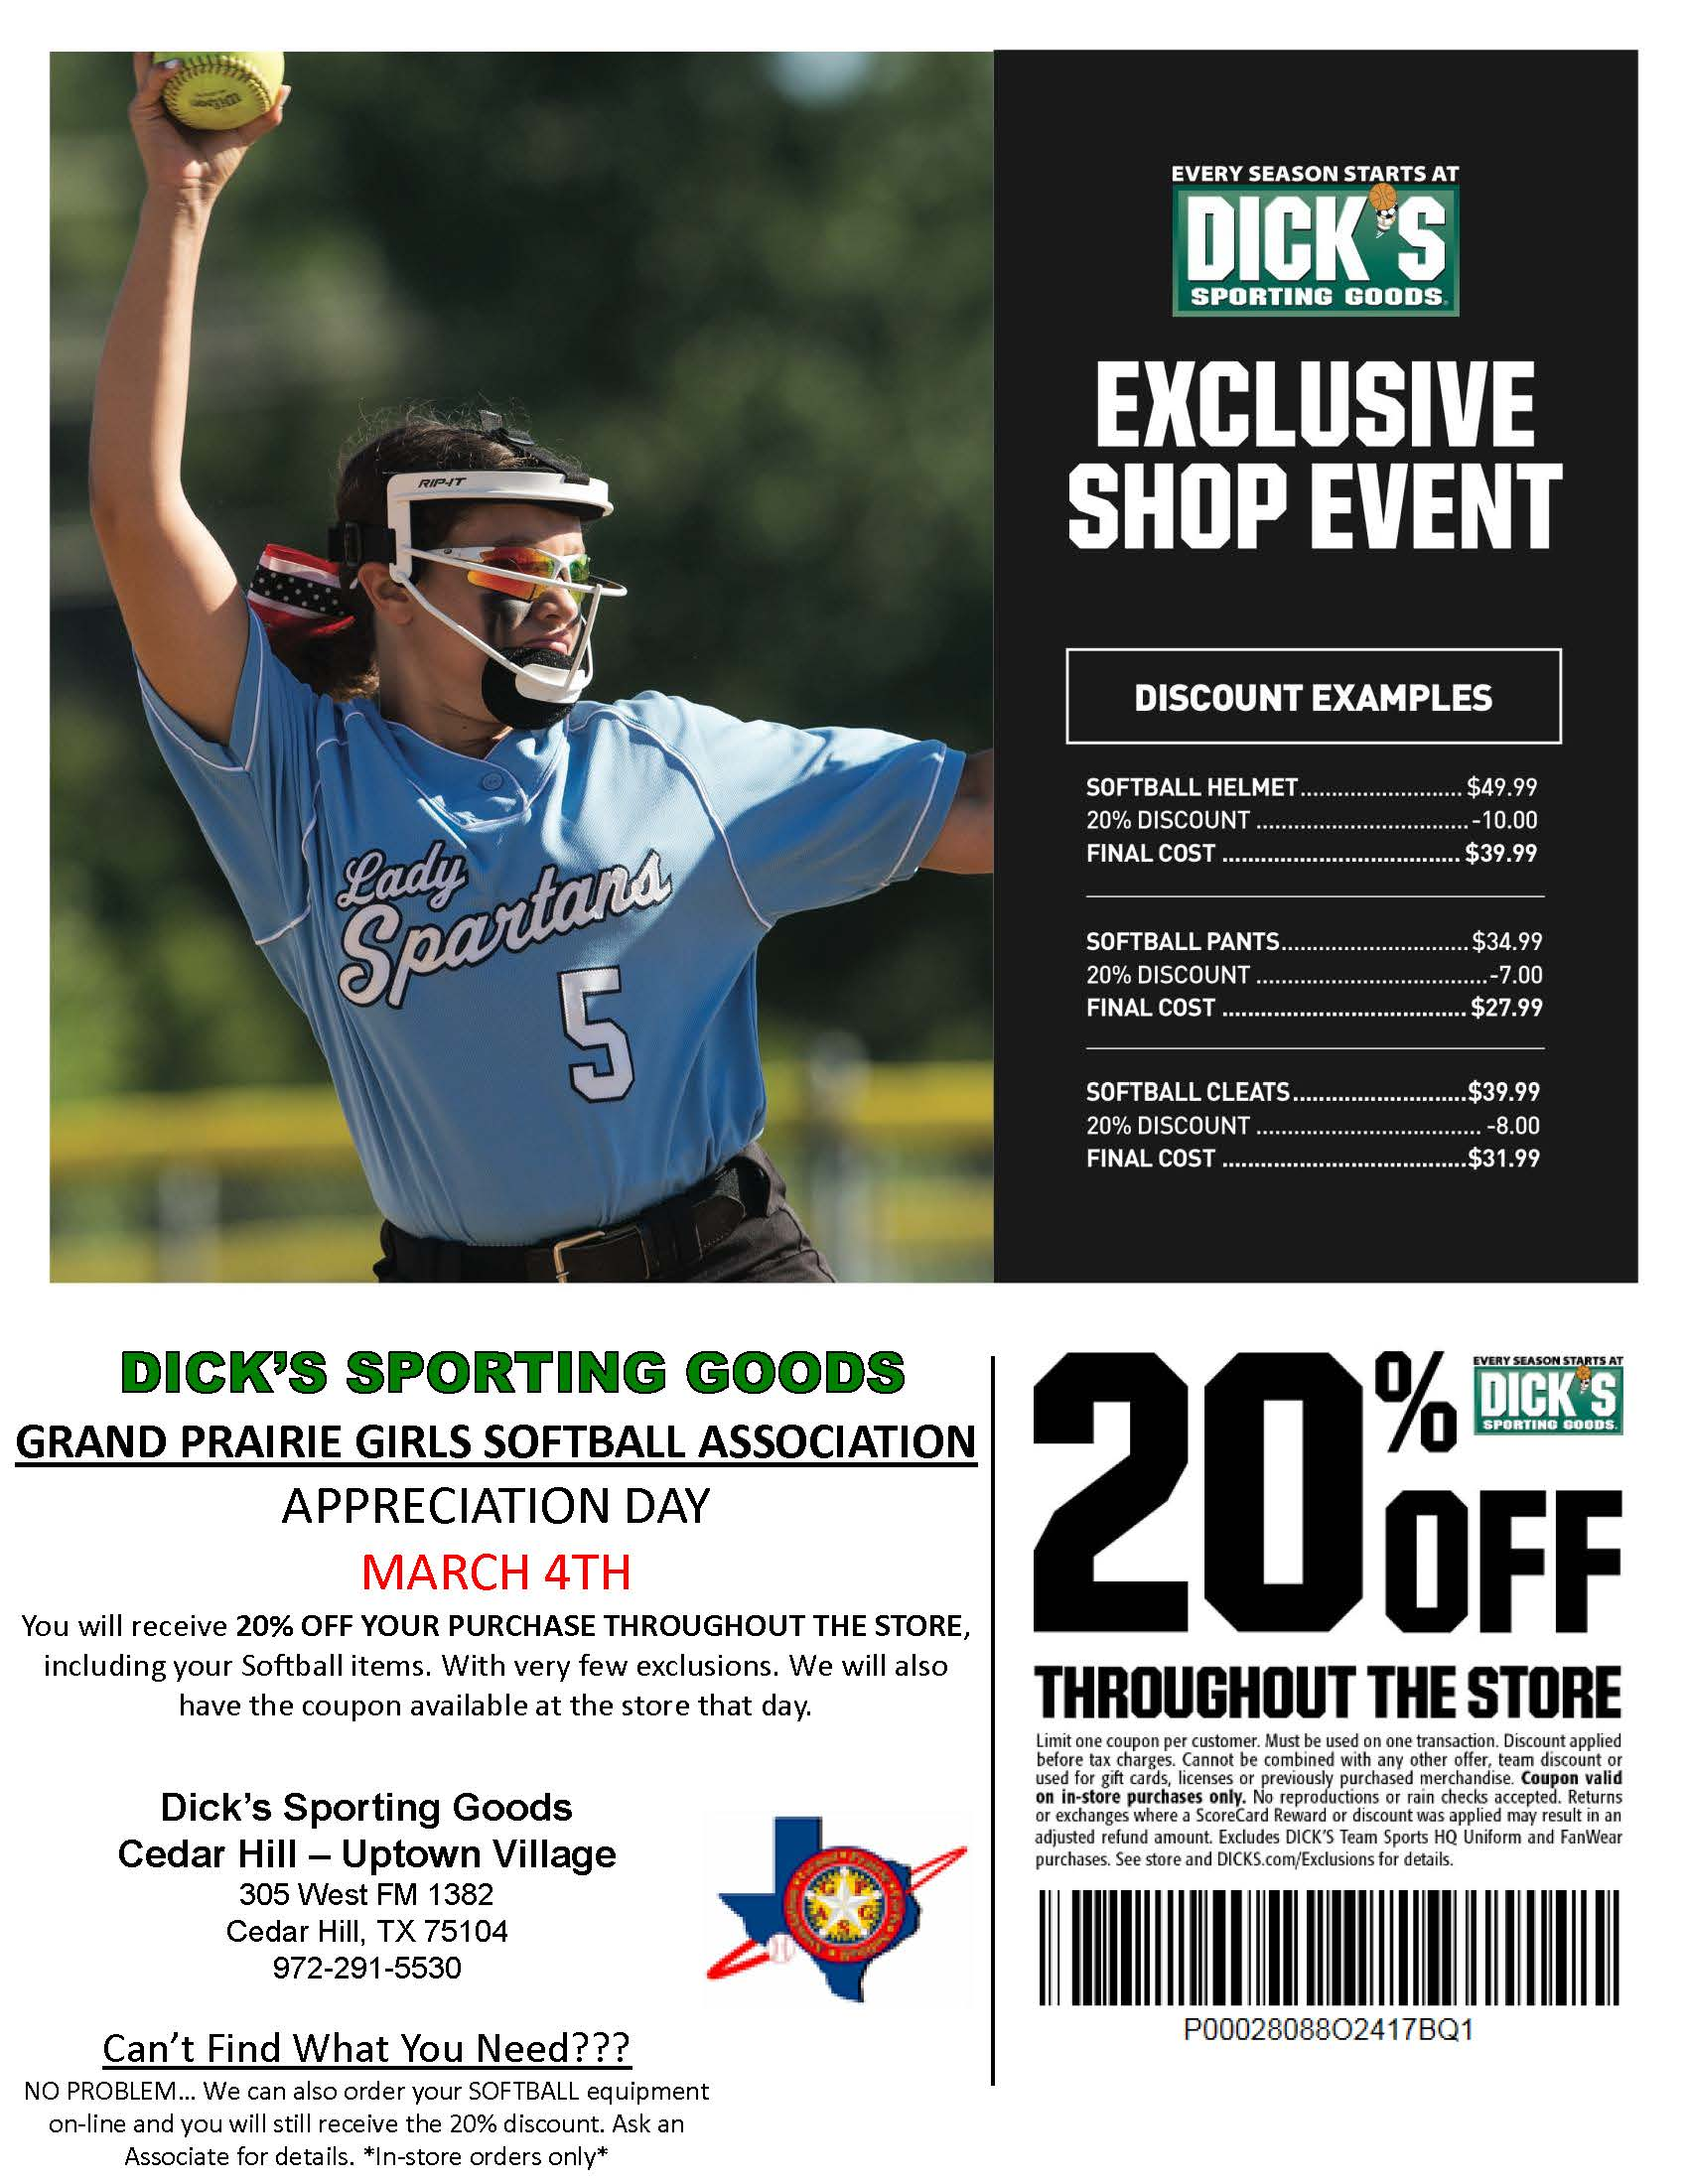 New awesome Dick's Sporting Goods Savings